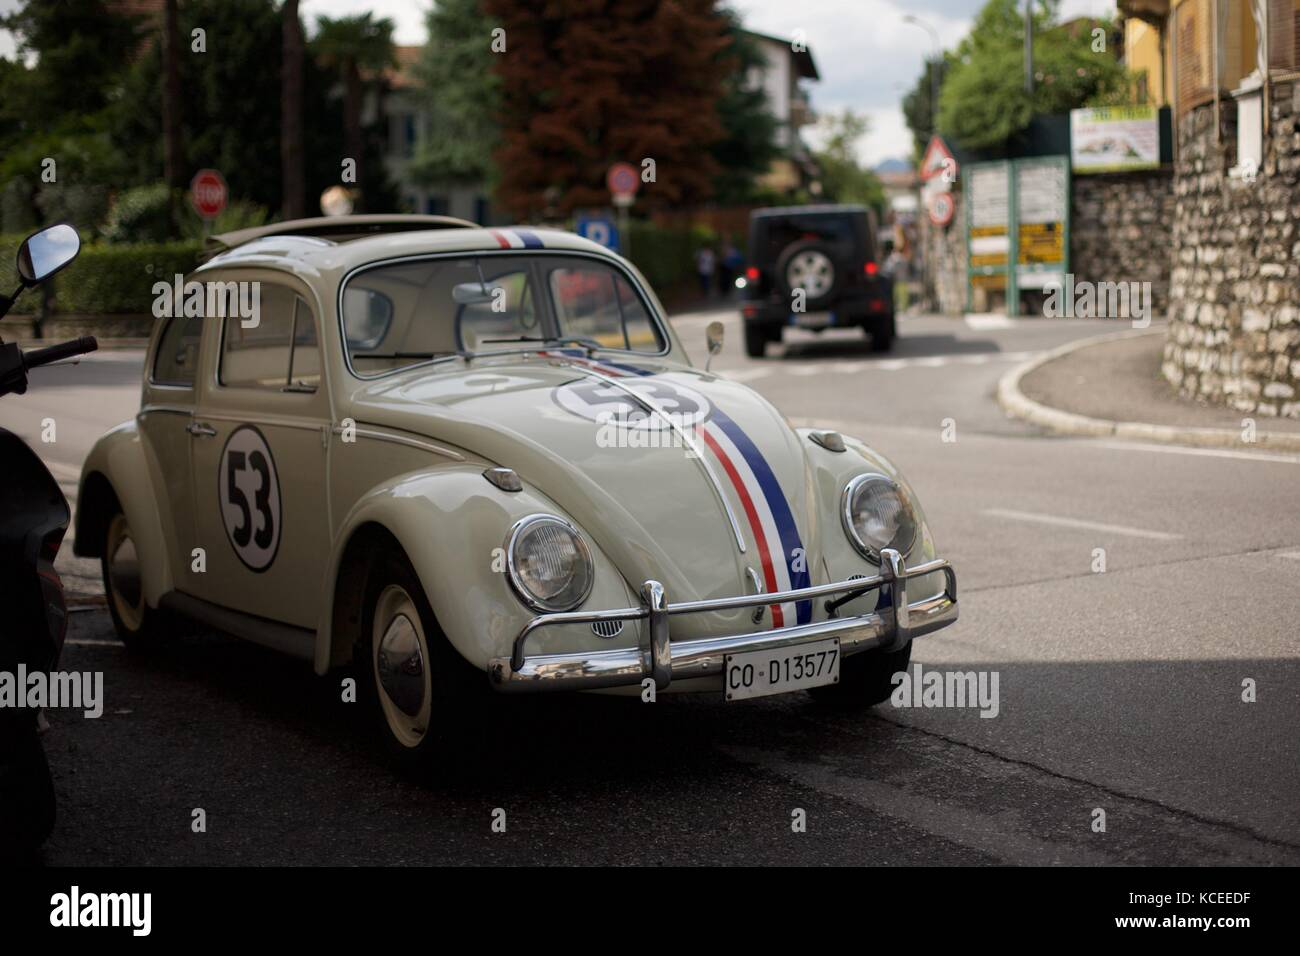 Volkswagen beetle with Herbie livery. Taken in Italy near lake como - Stock Image